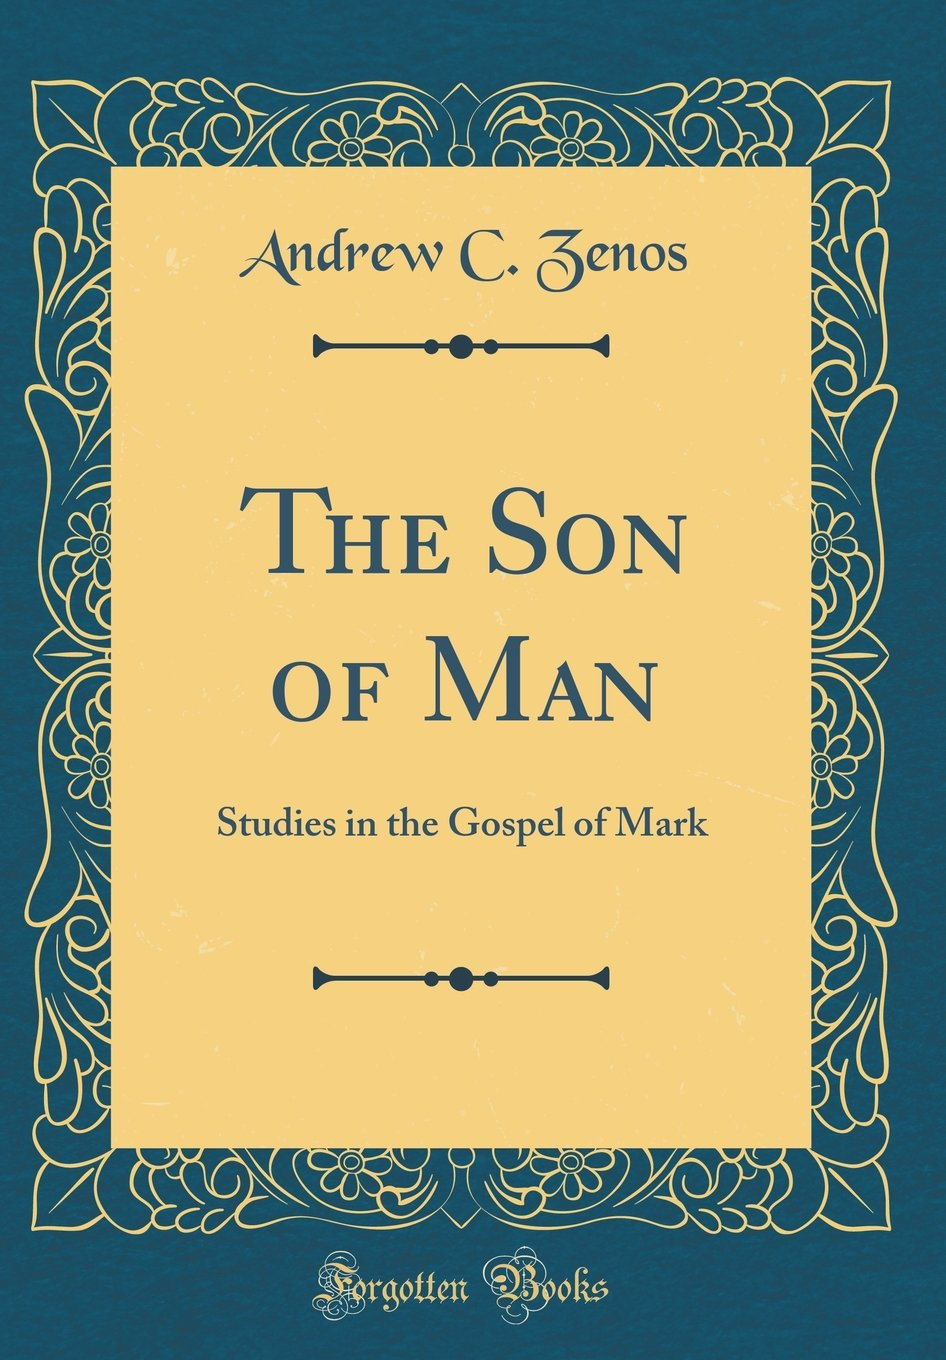 Zenos on Son of Man